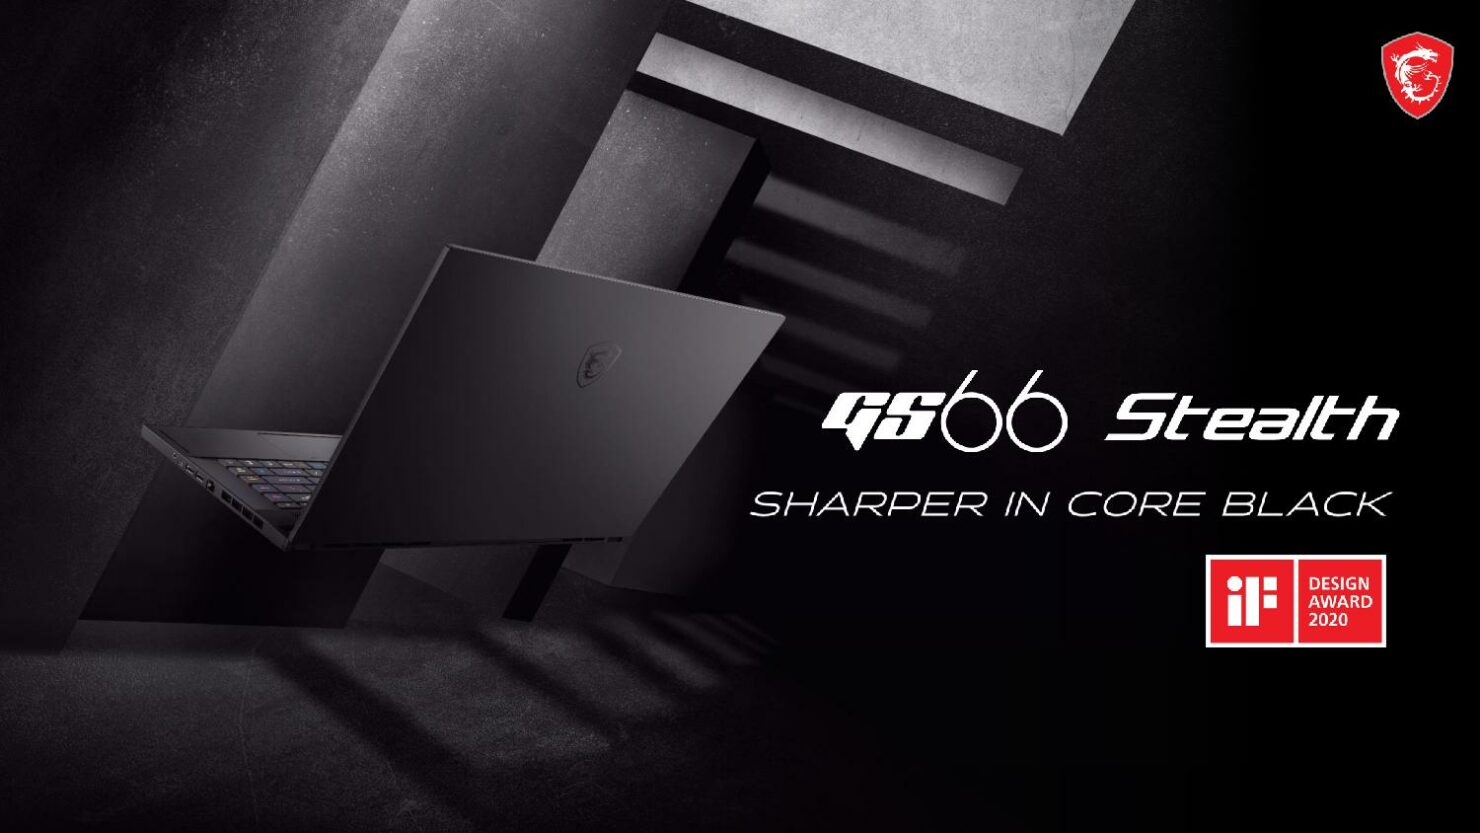 msi-gs66-stealth-product-information-page-002-2